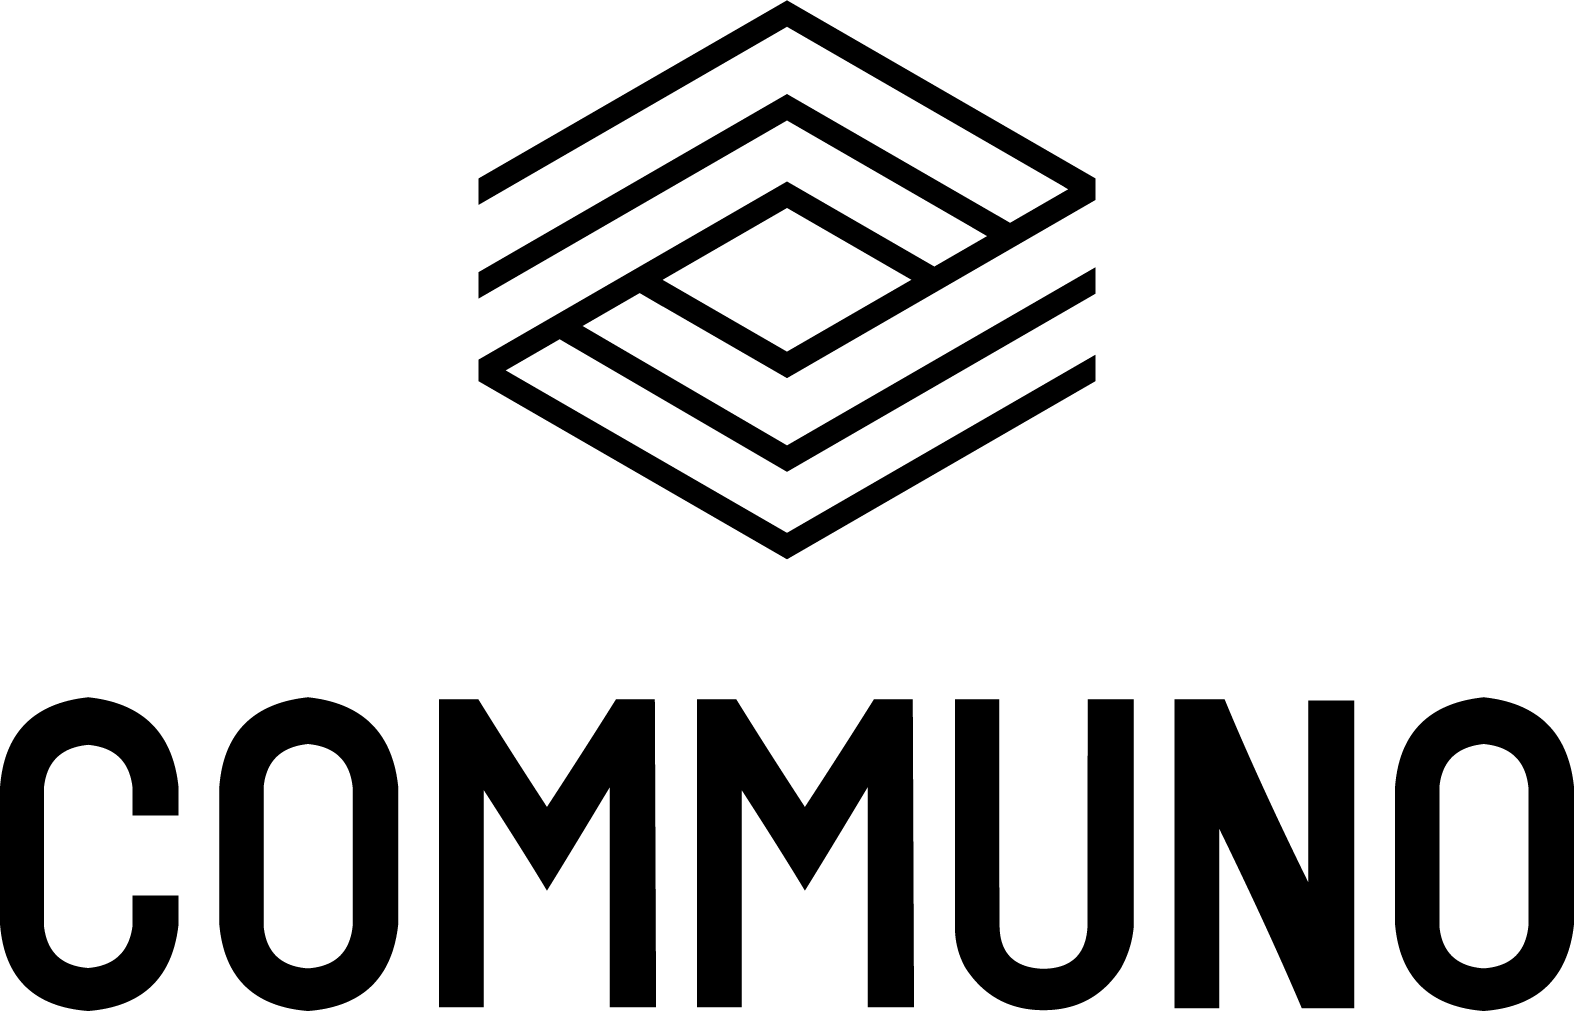 Communo acquires LocalSolo in its bid to become the